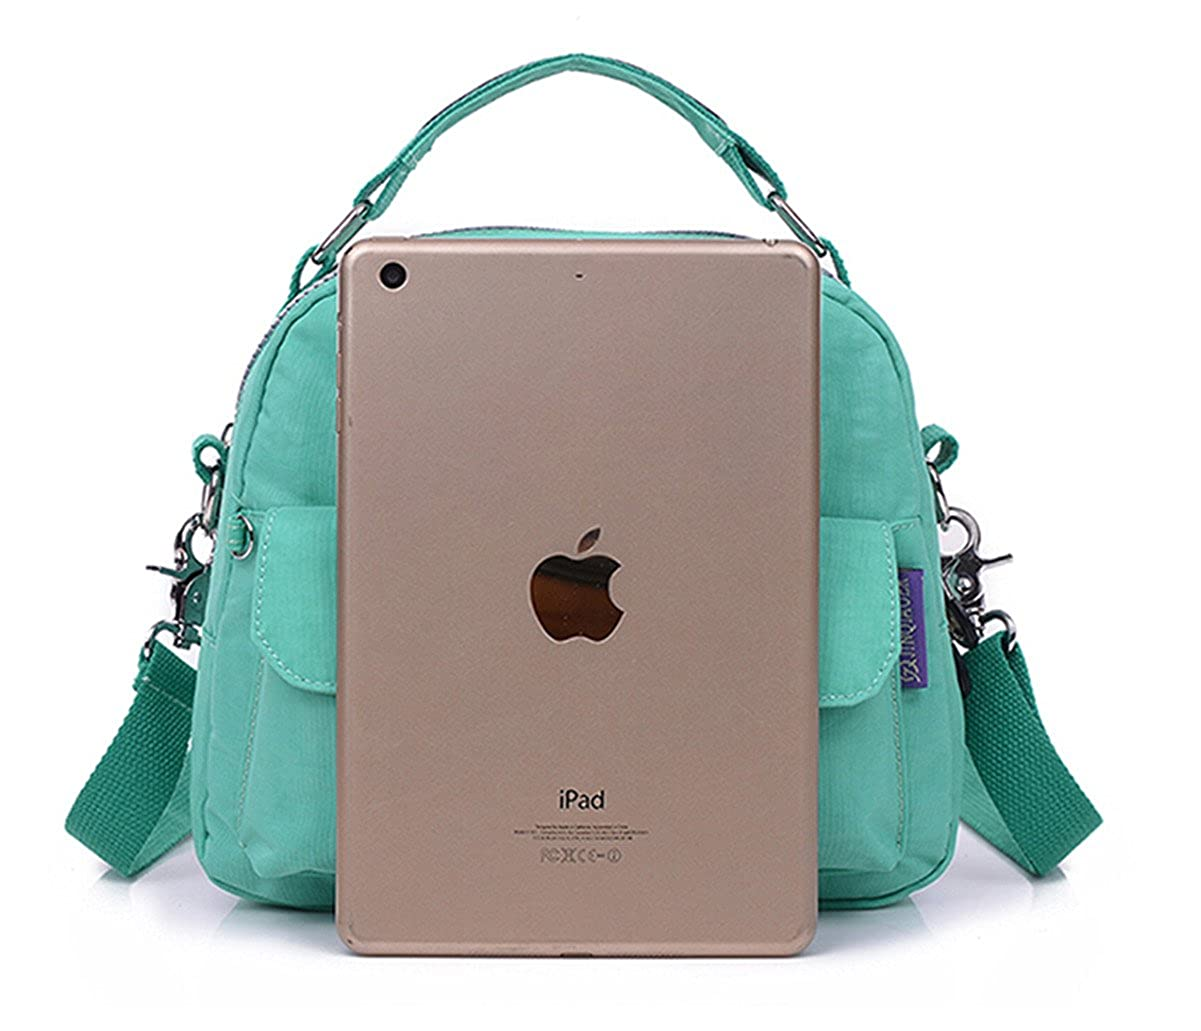 592c38a53c55 Tiny Chou Candy Color Water Resistant Nylon Cell Phone Pouch Bag Dual  Layers Crossbody Handbag Backpack  Amazon.co.uk  Shoes   Bags